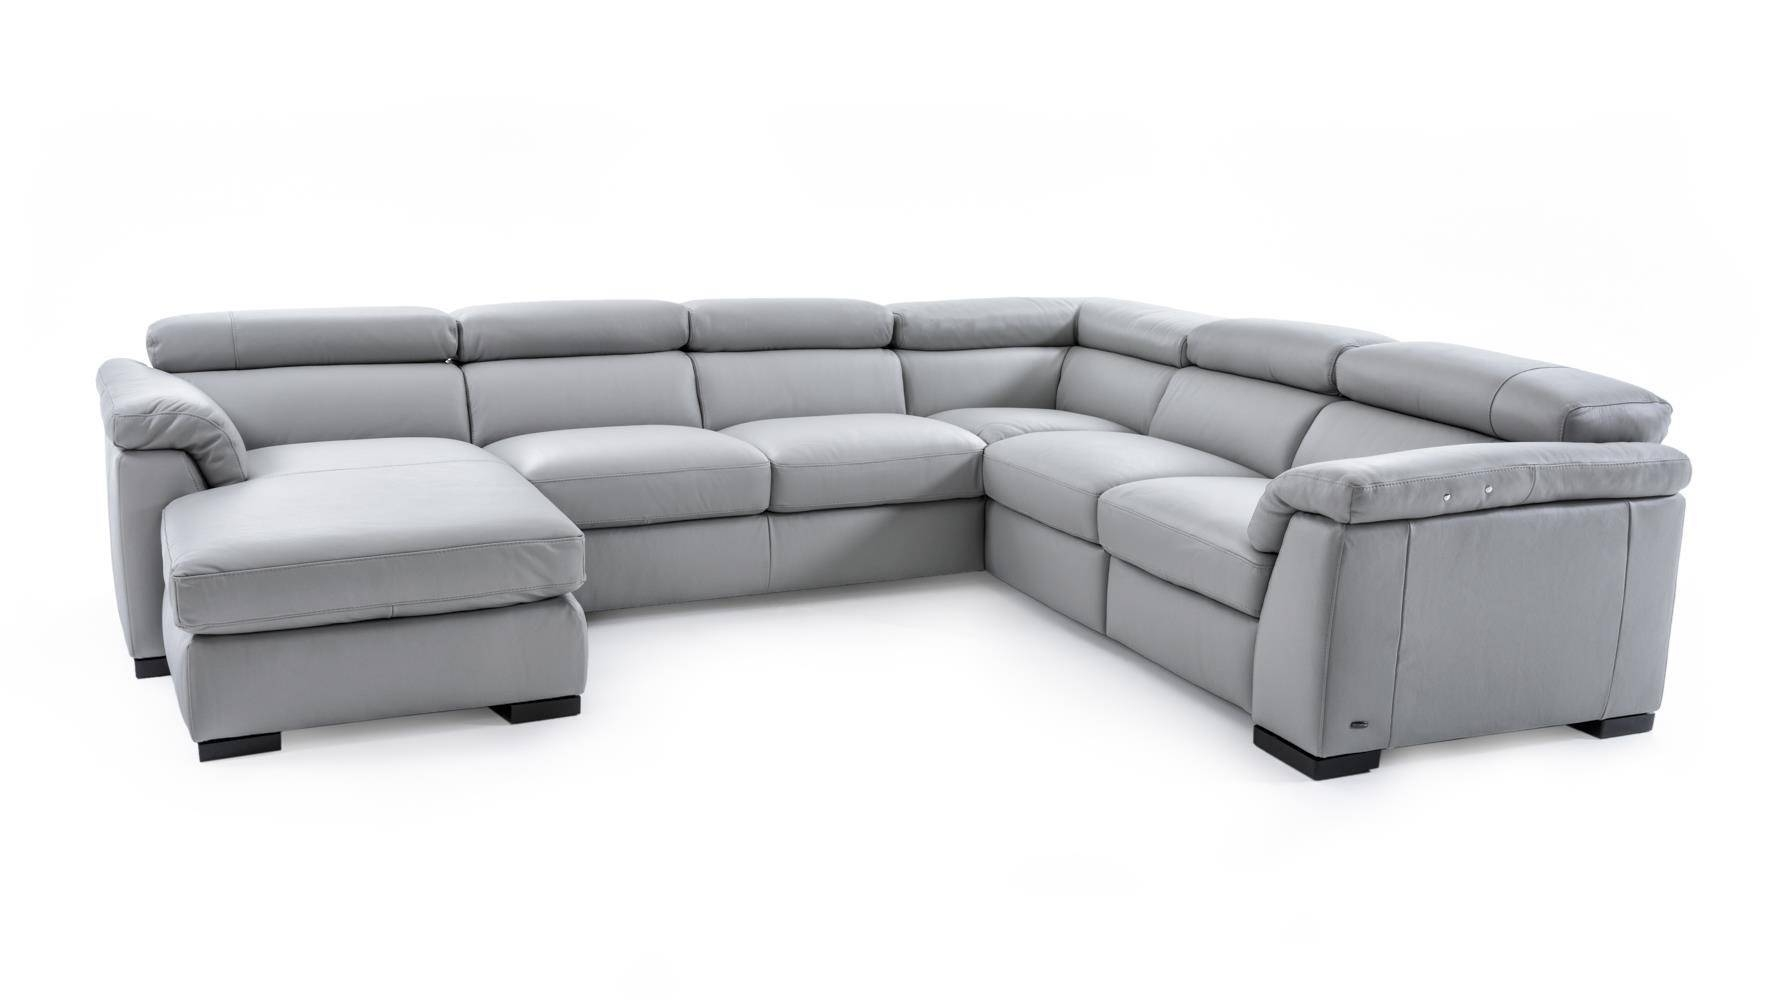 Natuzzi Editions B634 Contemporary Leather Sectional Sofa With Laf inside Natuzzi Microfiber Sectional Sofas (Image 4 of 15)